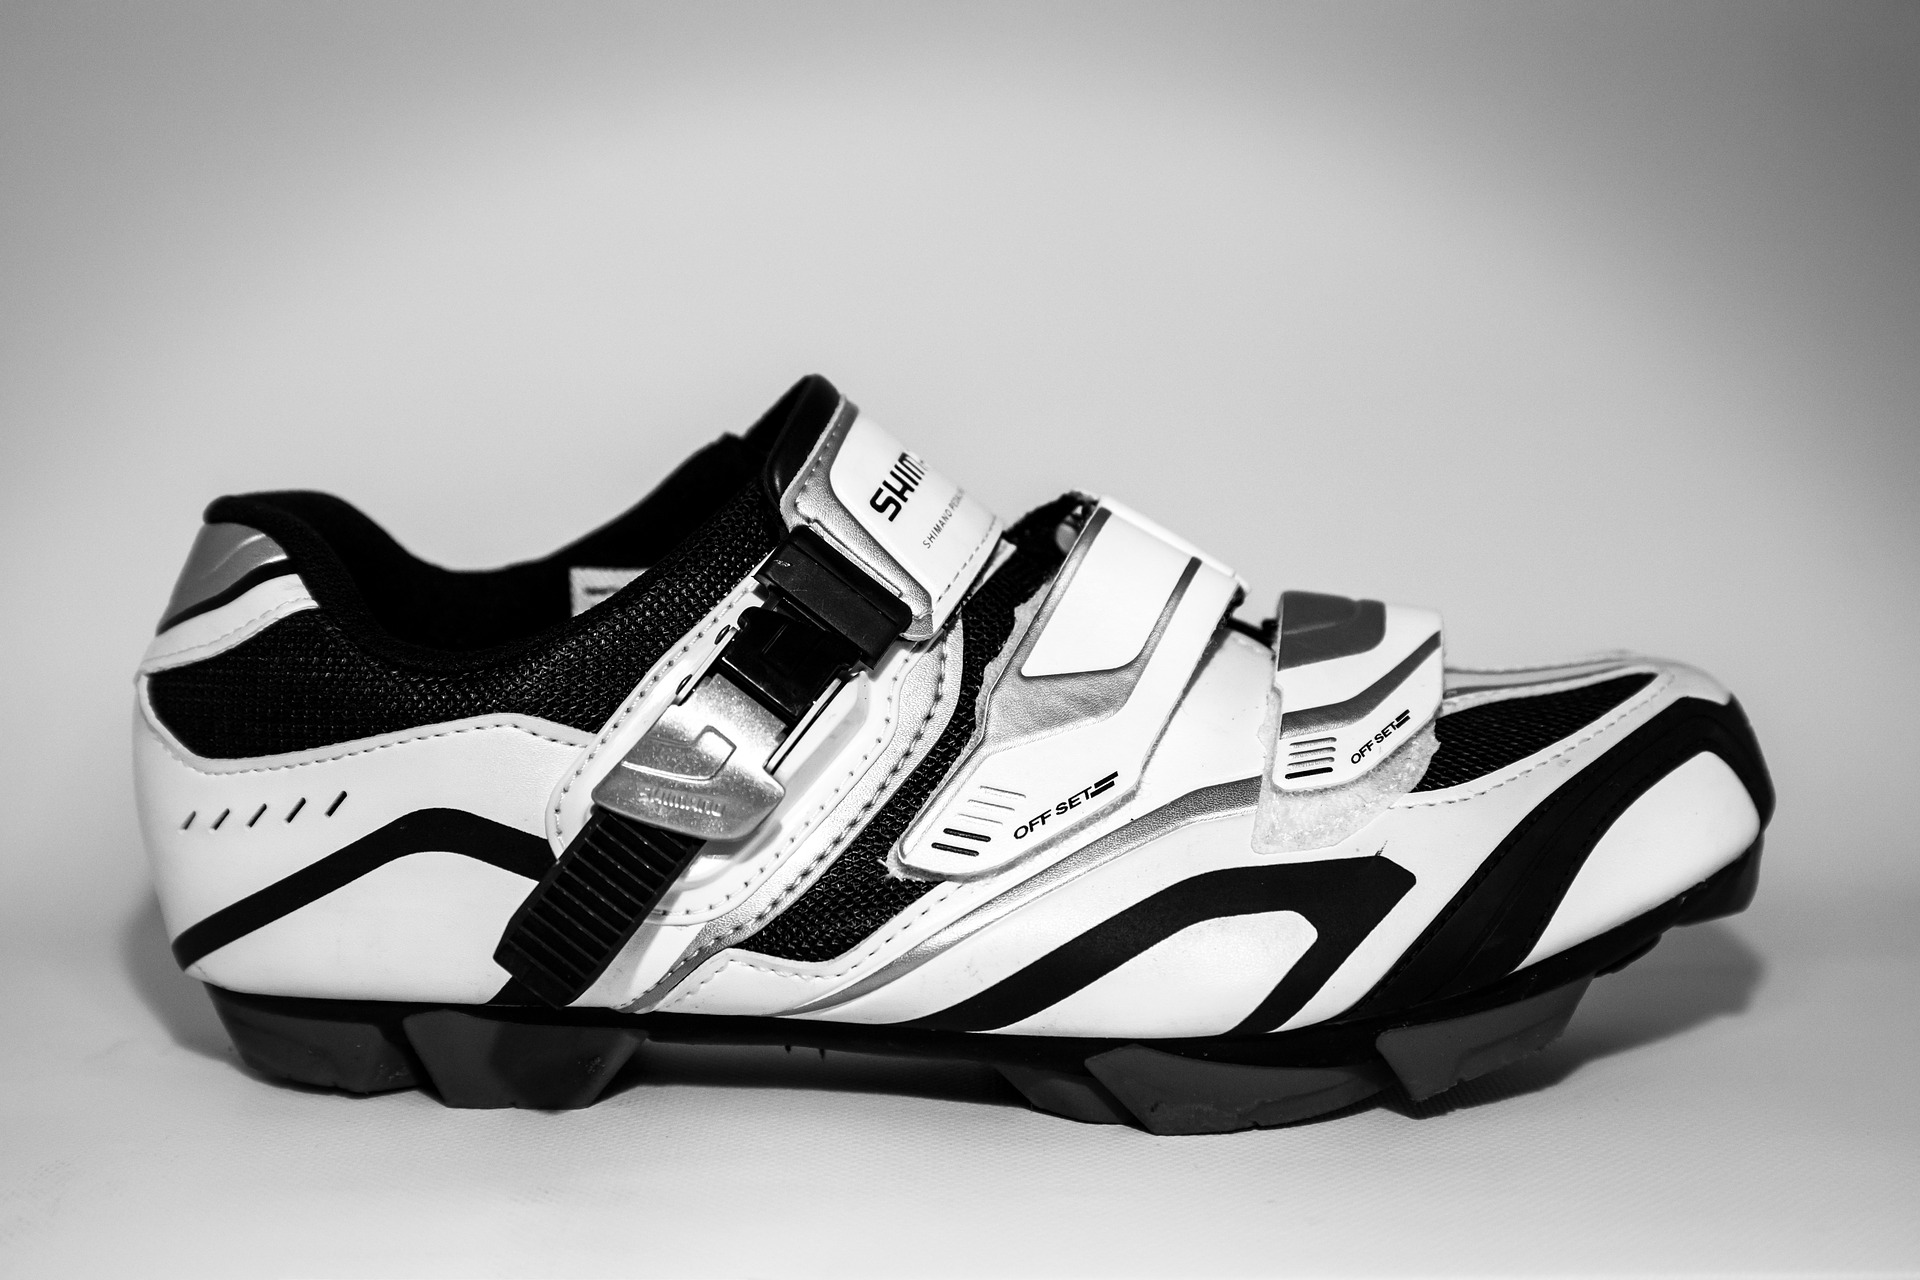 Shimano Shoes Sizing Chart — Get Your Best Fit